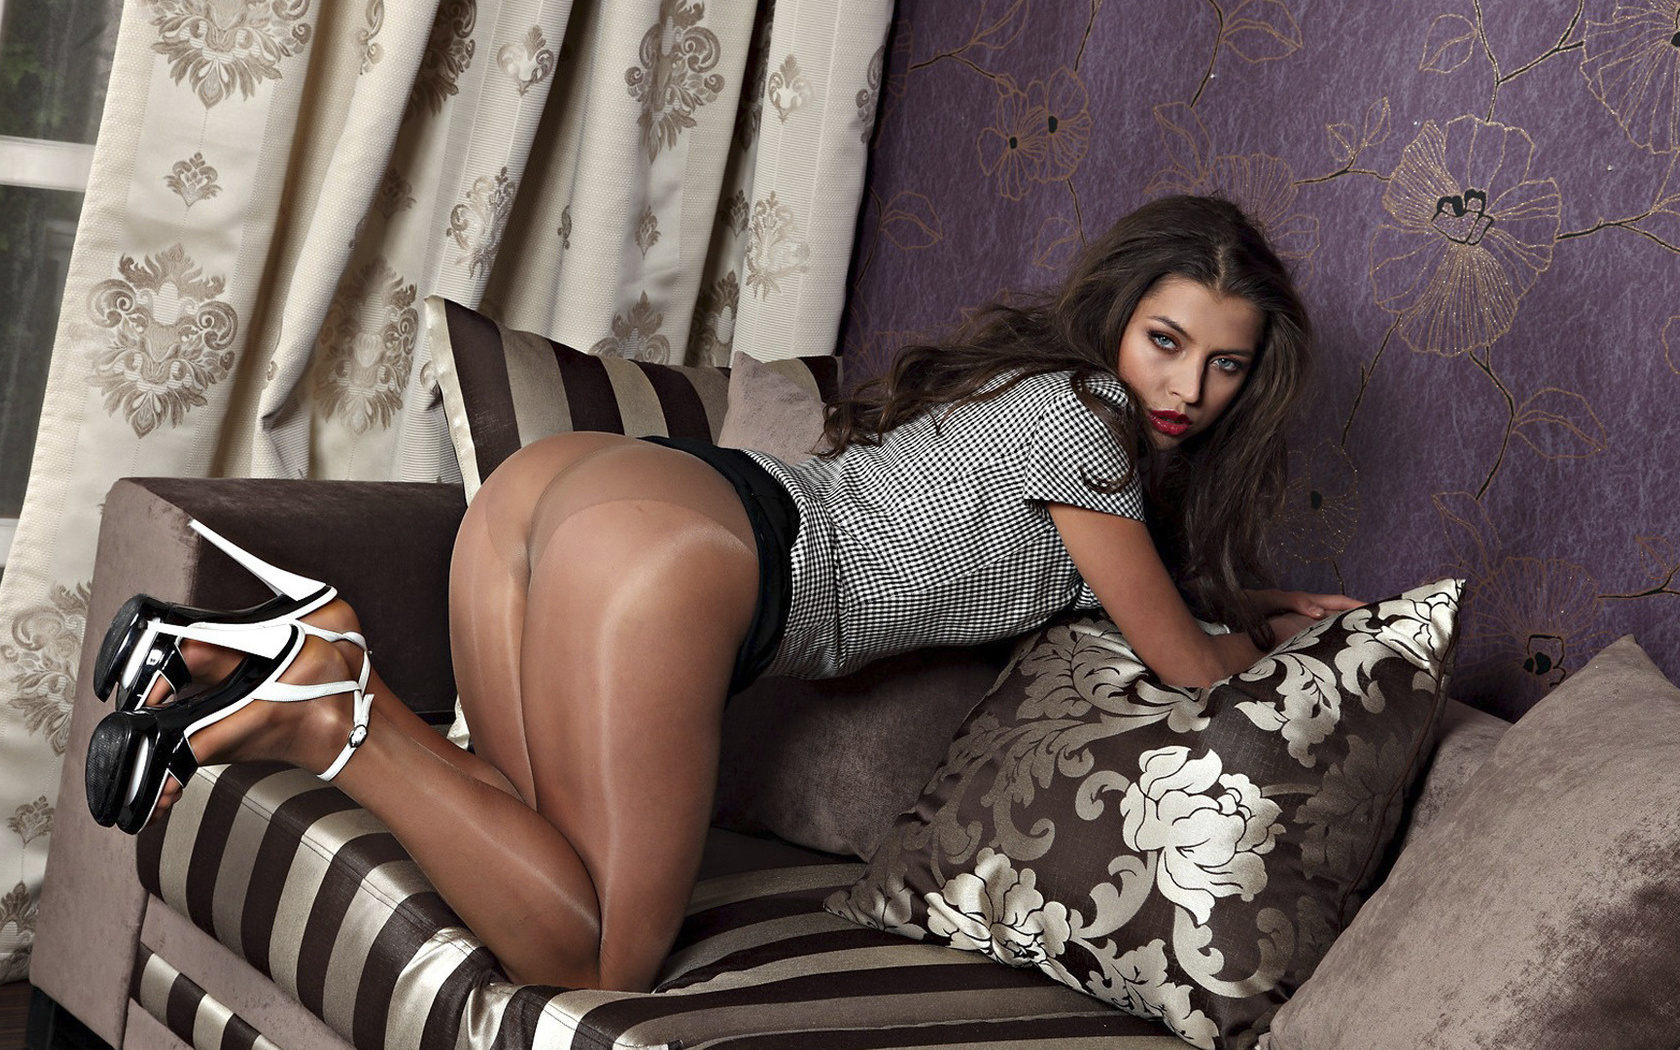 seduces-guy-hot-pantyhose-girls-girl